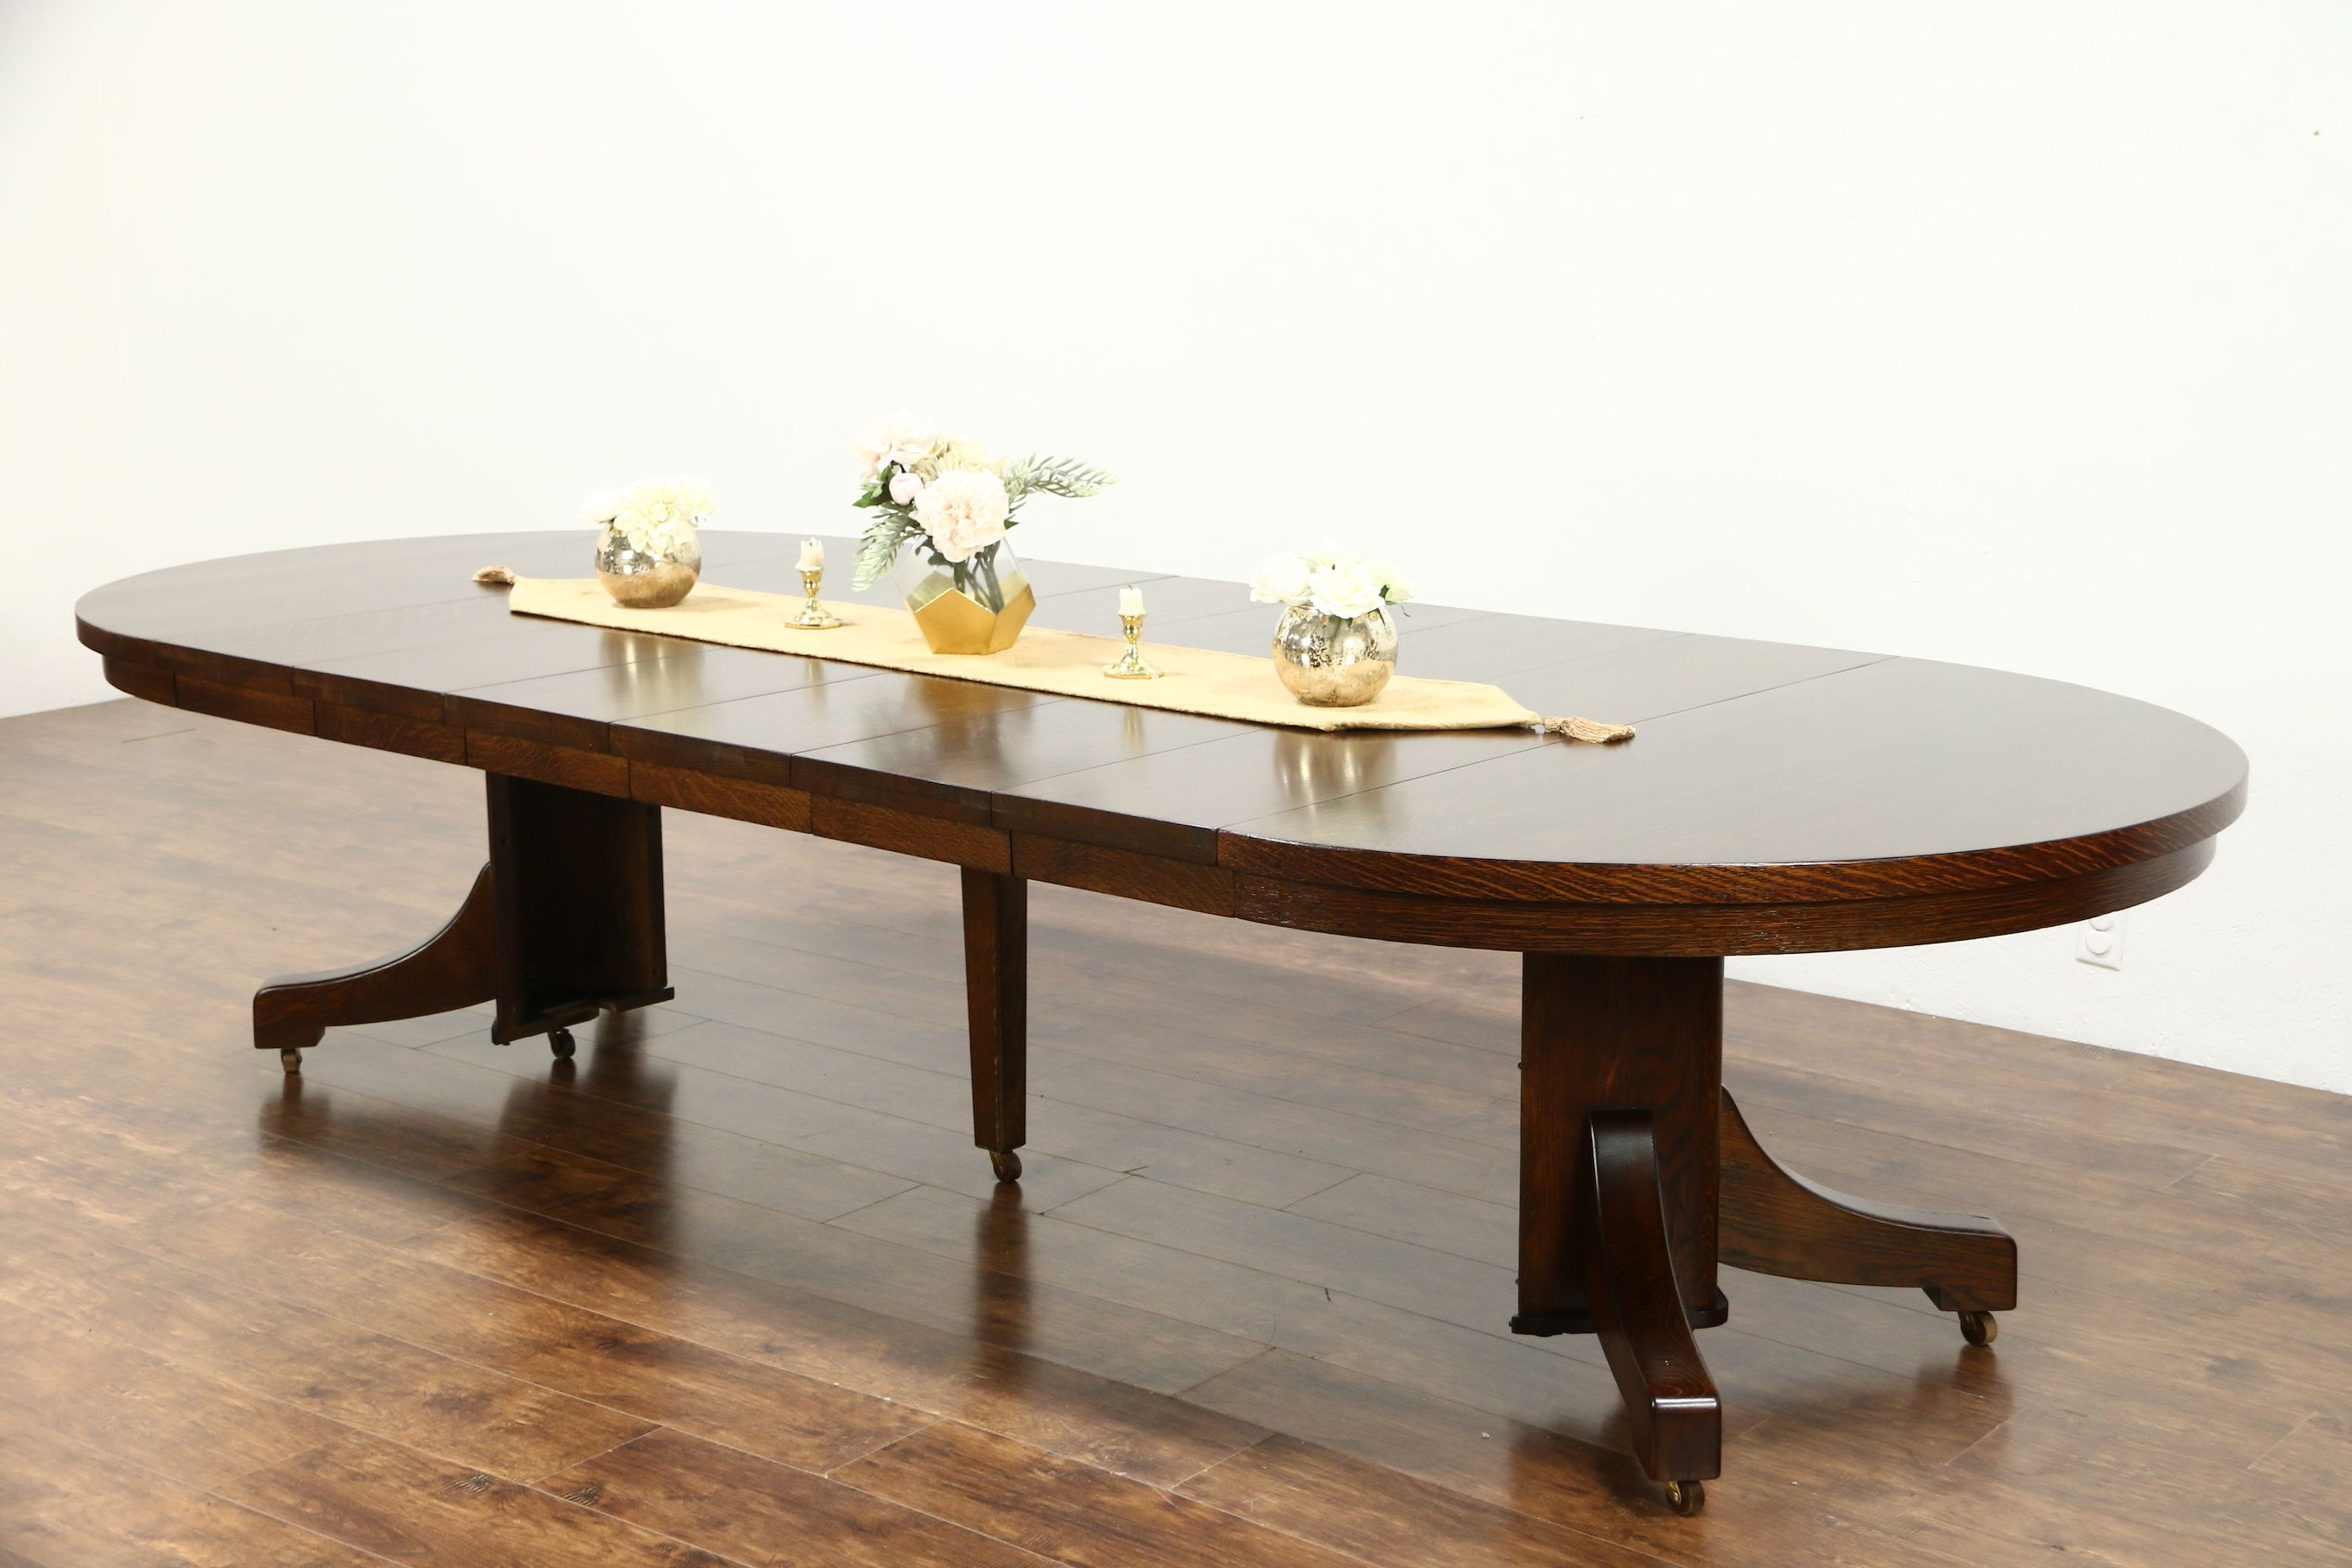 Craftsman Round Dining Tables Throughout Best And Newest Sold – Arts & Crafts Mission Oak Antique Round Craftsman Dining (View 8 of 25)